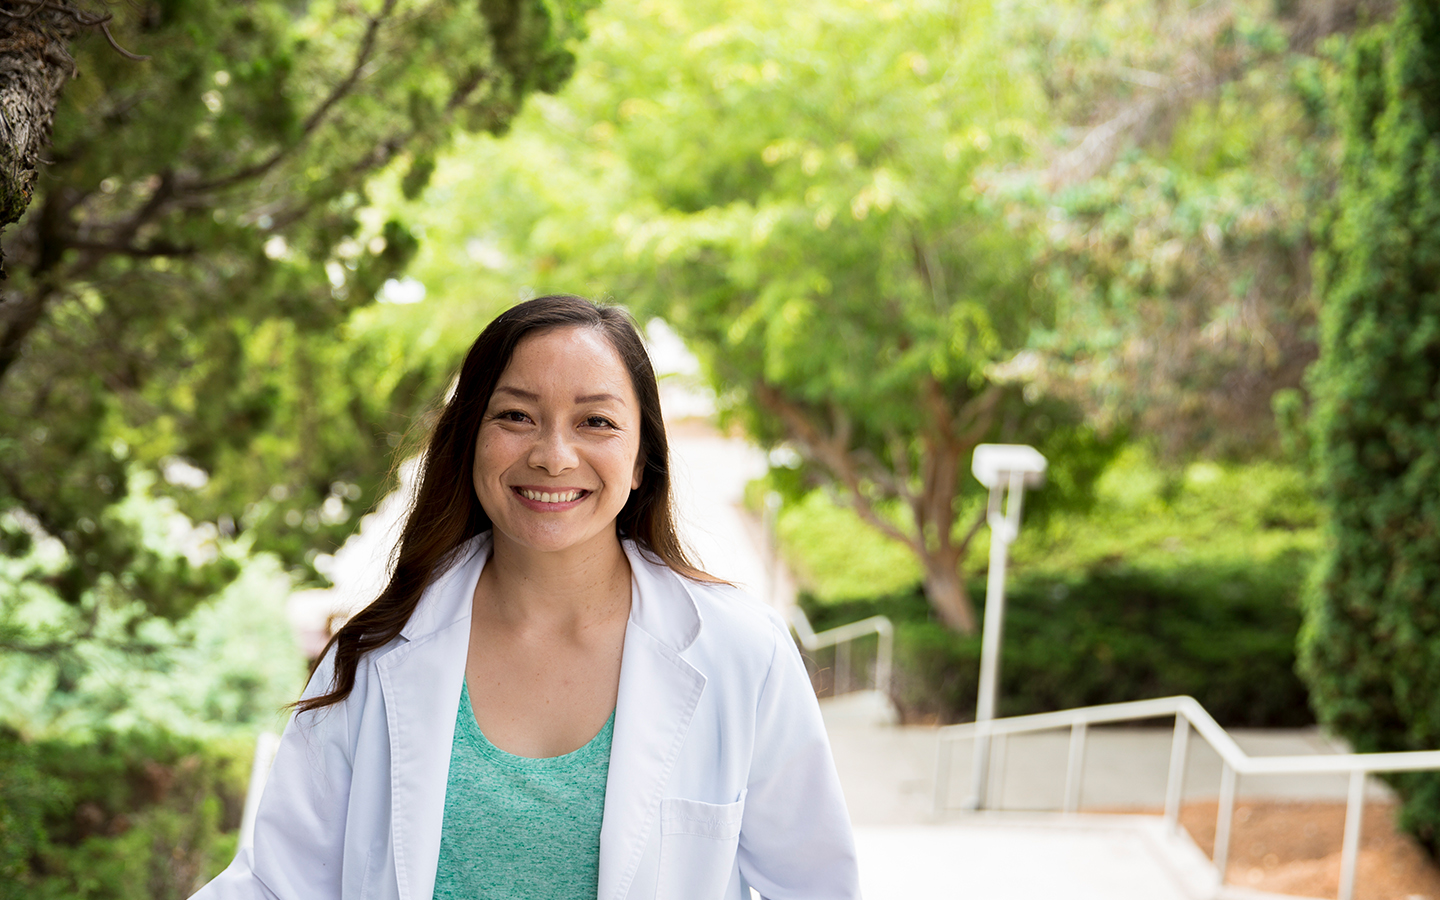 Master of Science in Nursing student at Holy Names University